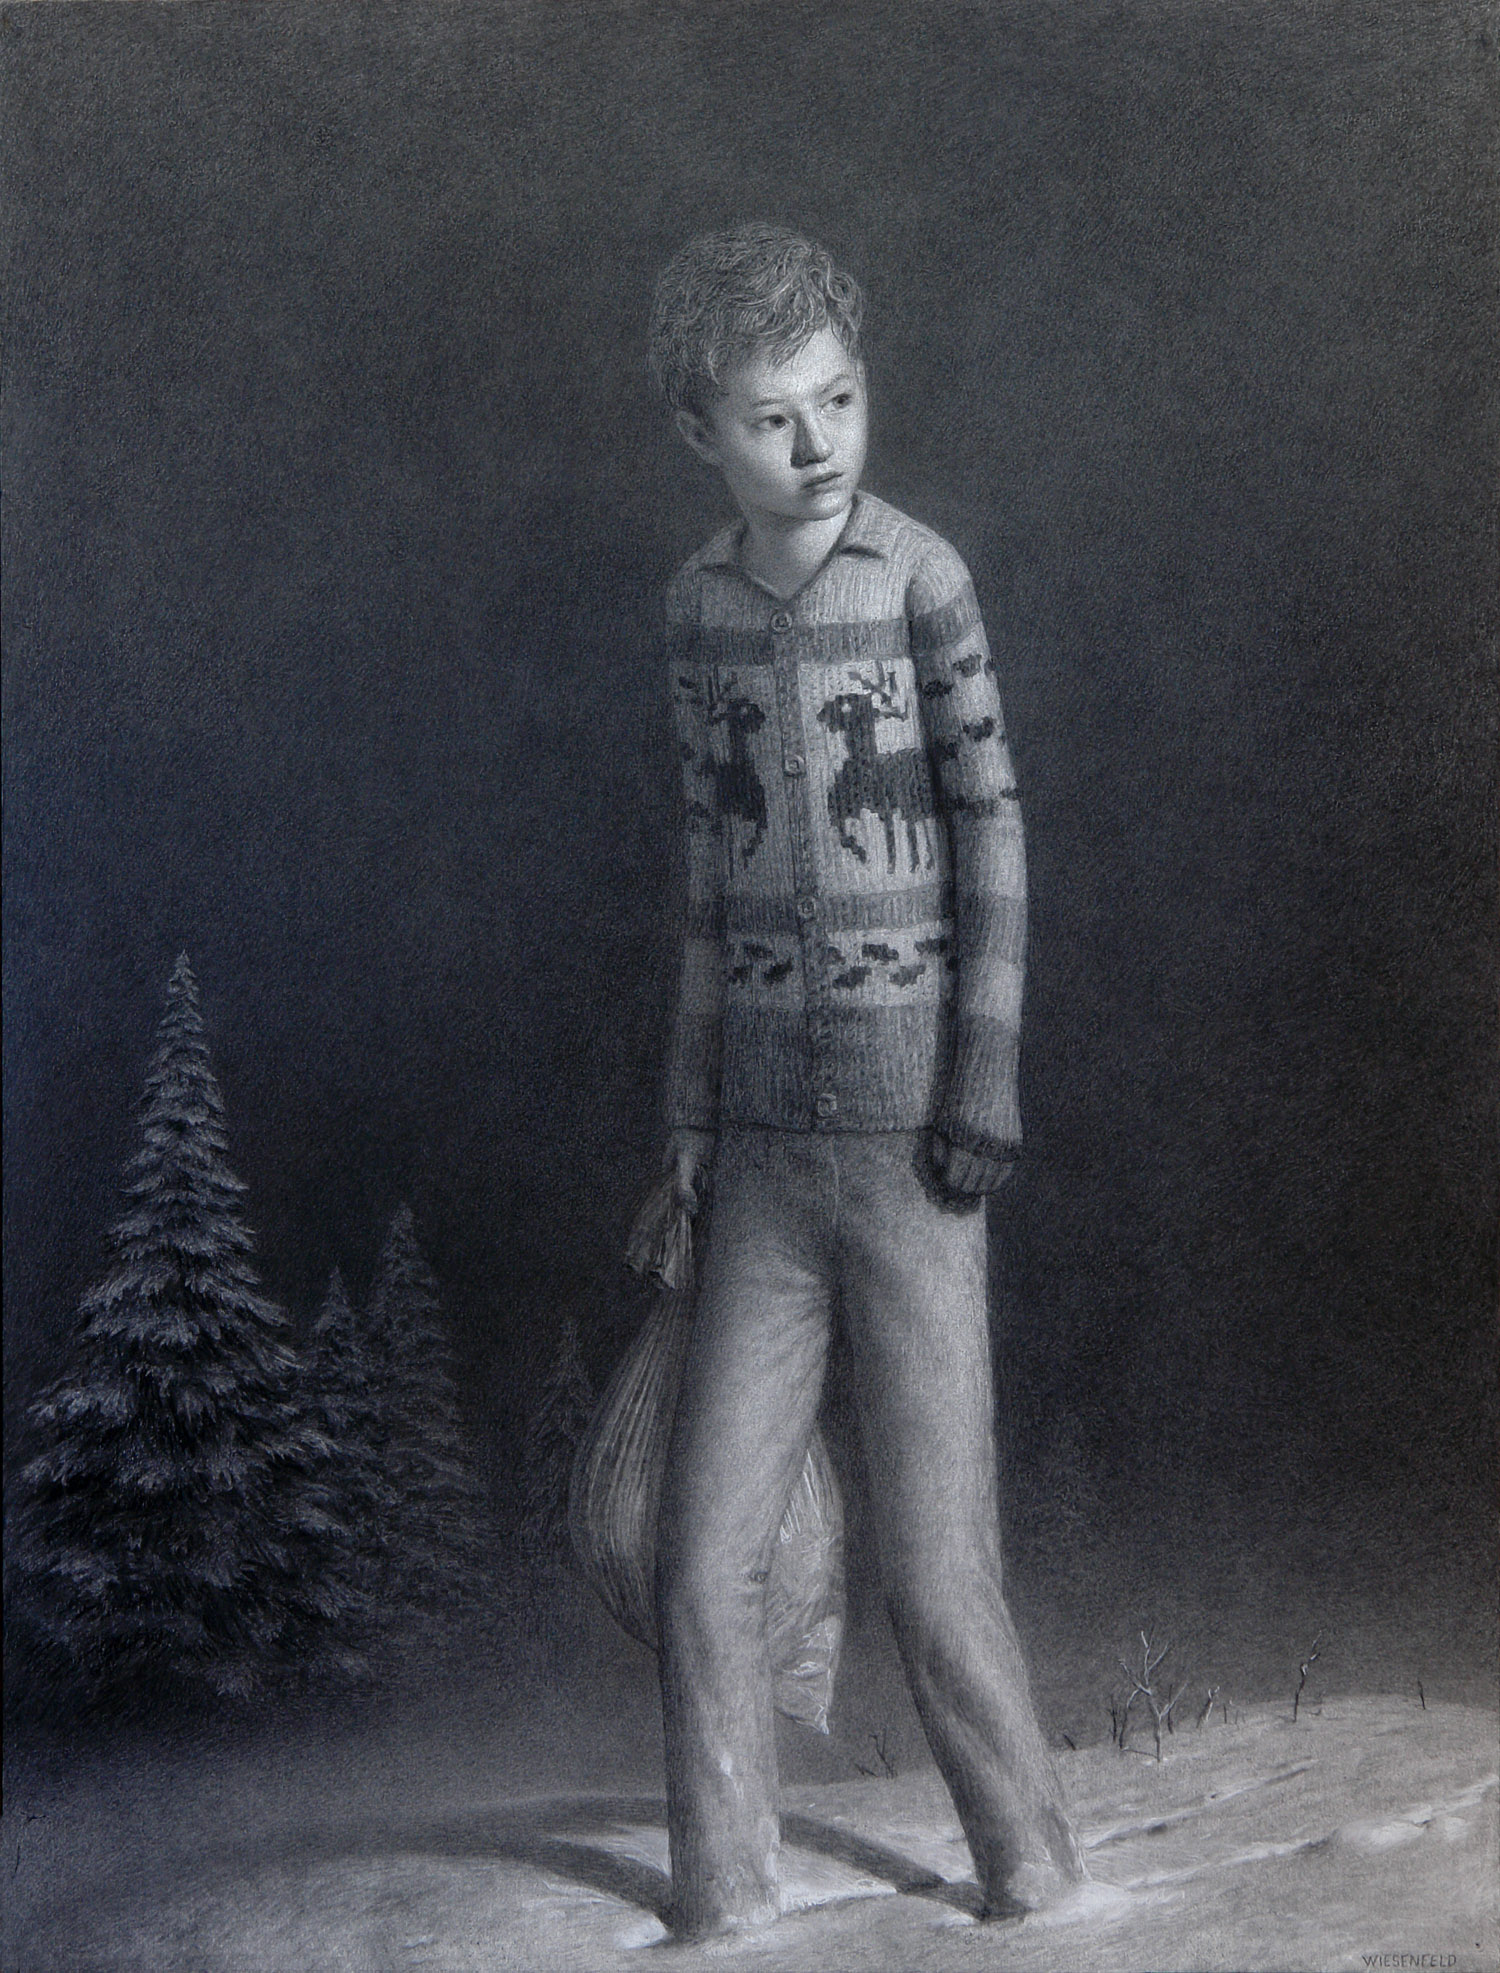 William , charcoal on paper, 50 x 38 in / 127 x 97 cm, 2008